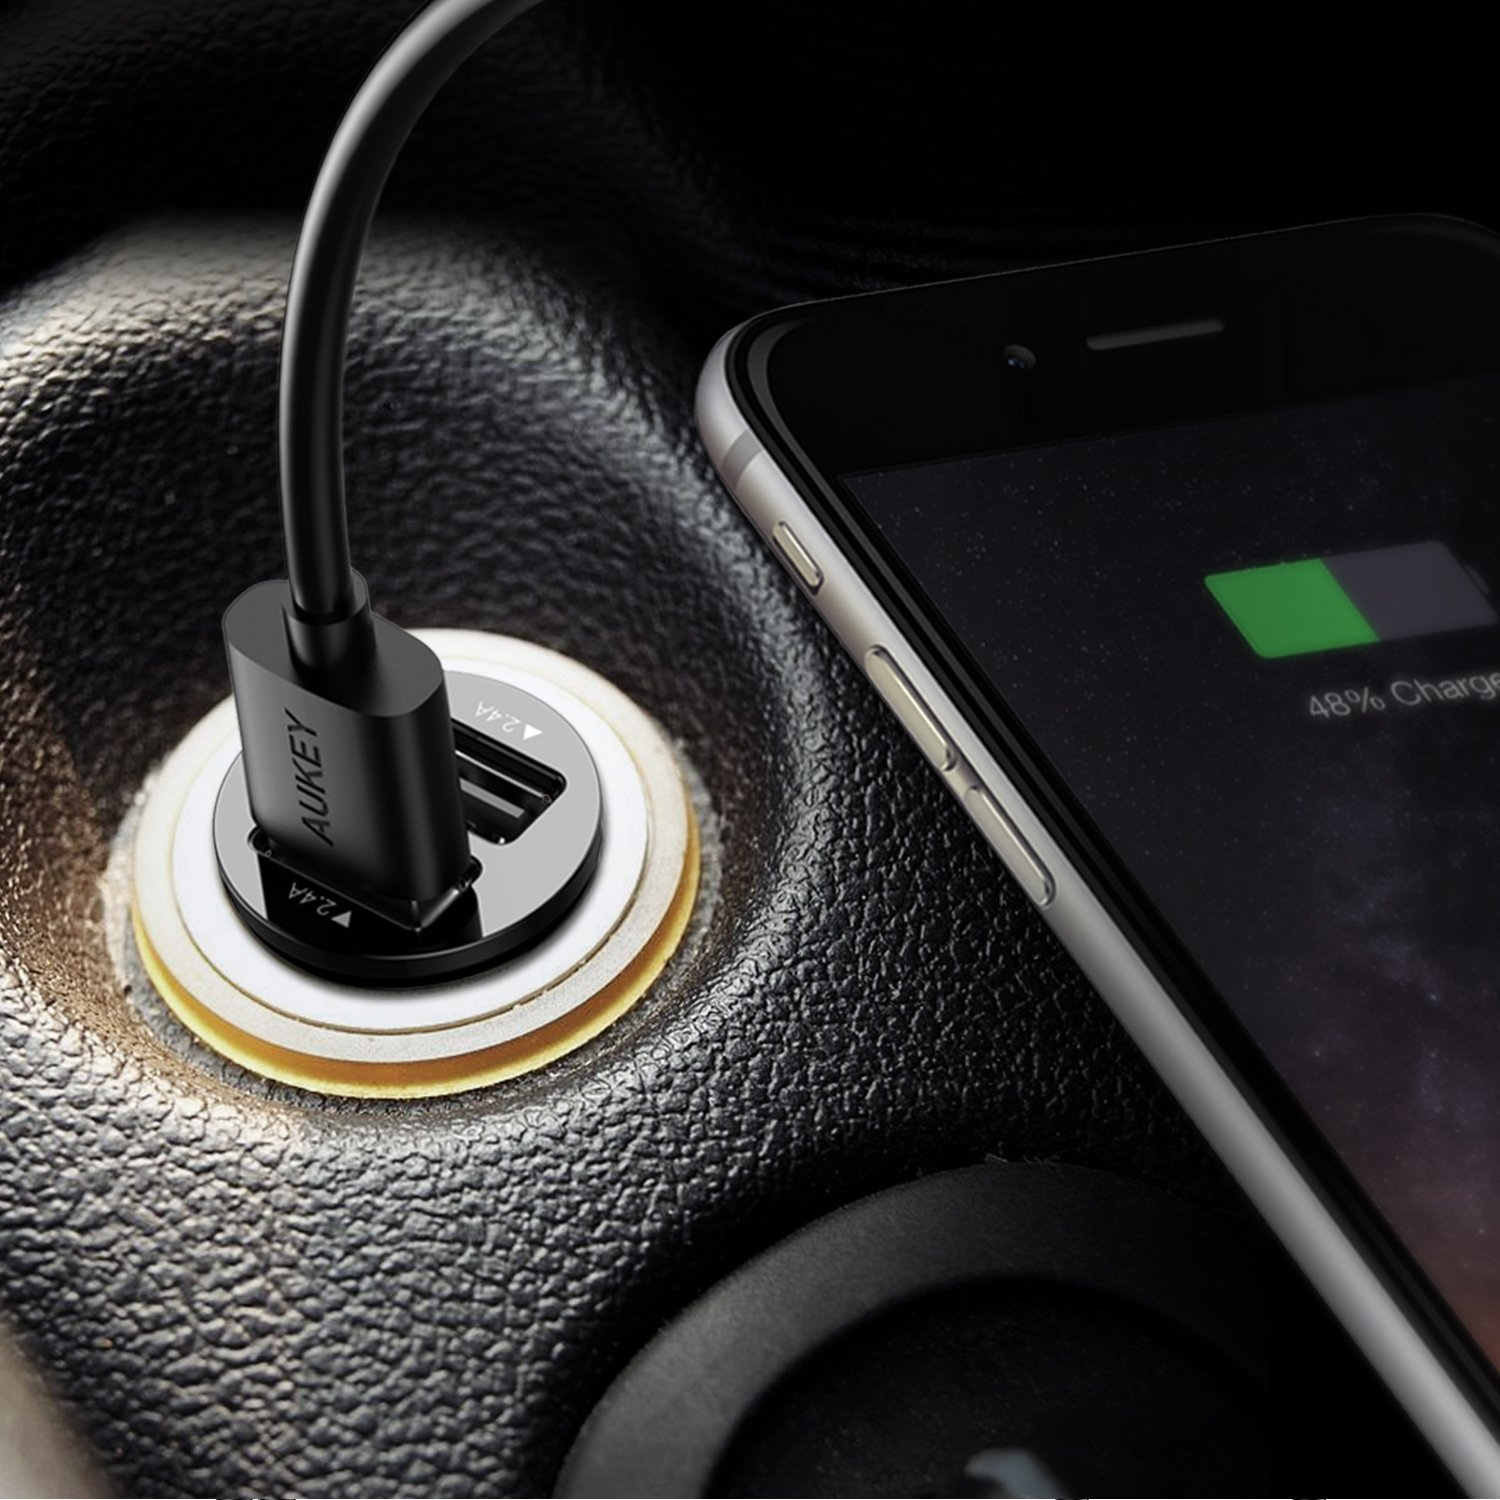 chargeur voiture pour iPhone, iPad, smartphone,Tablette Samsung Galaxy et Appareils Android